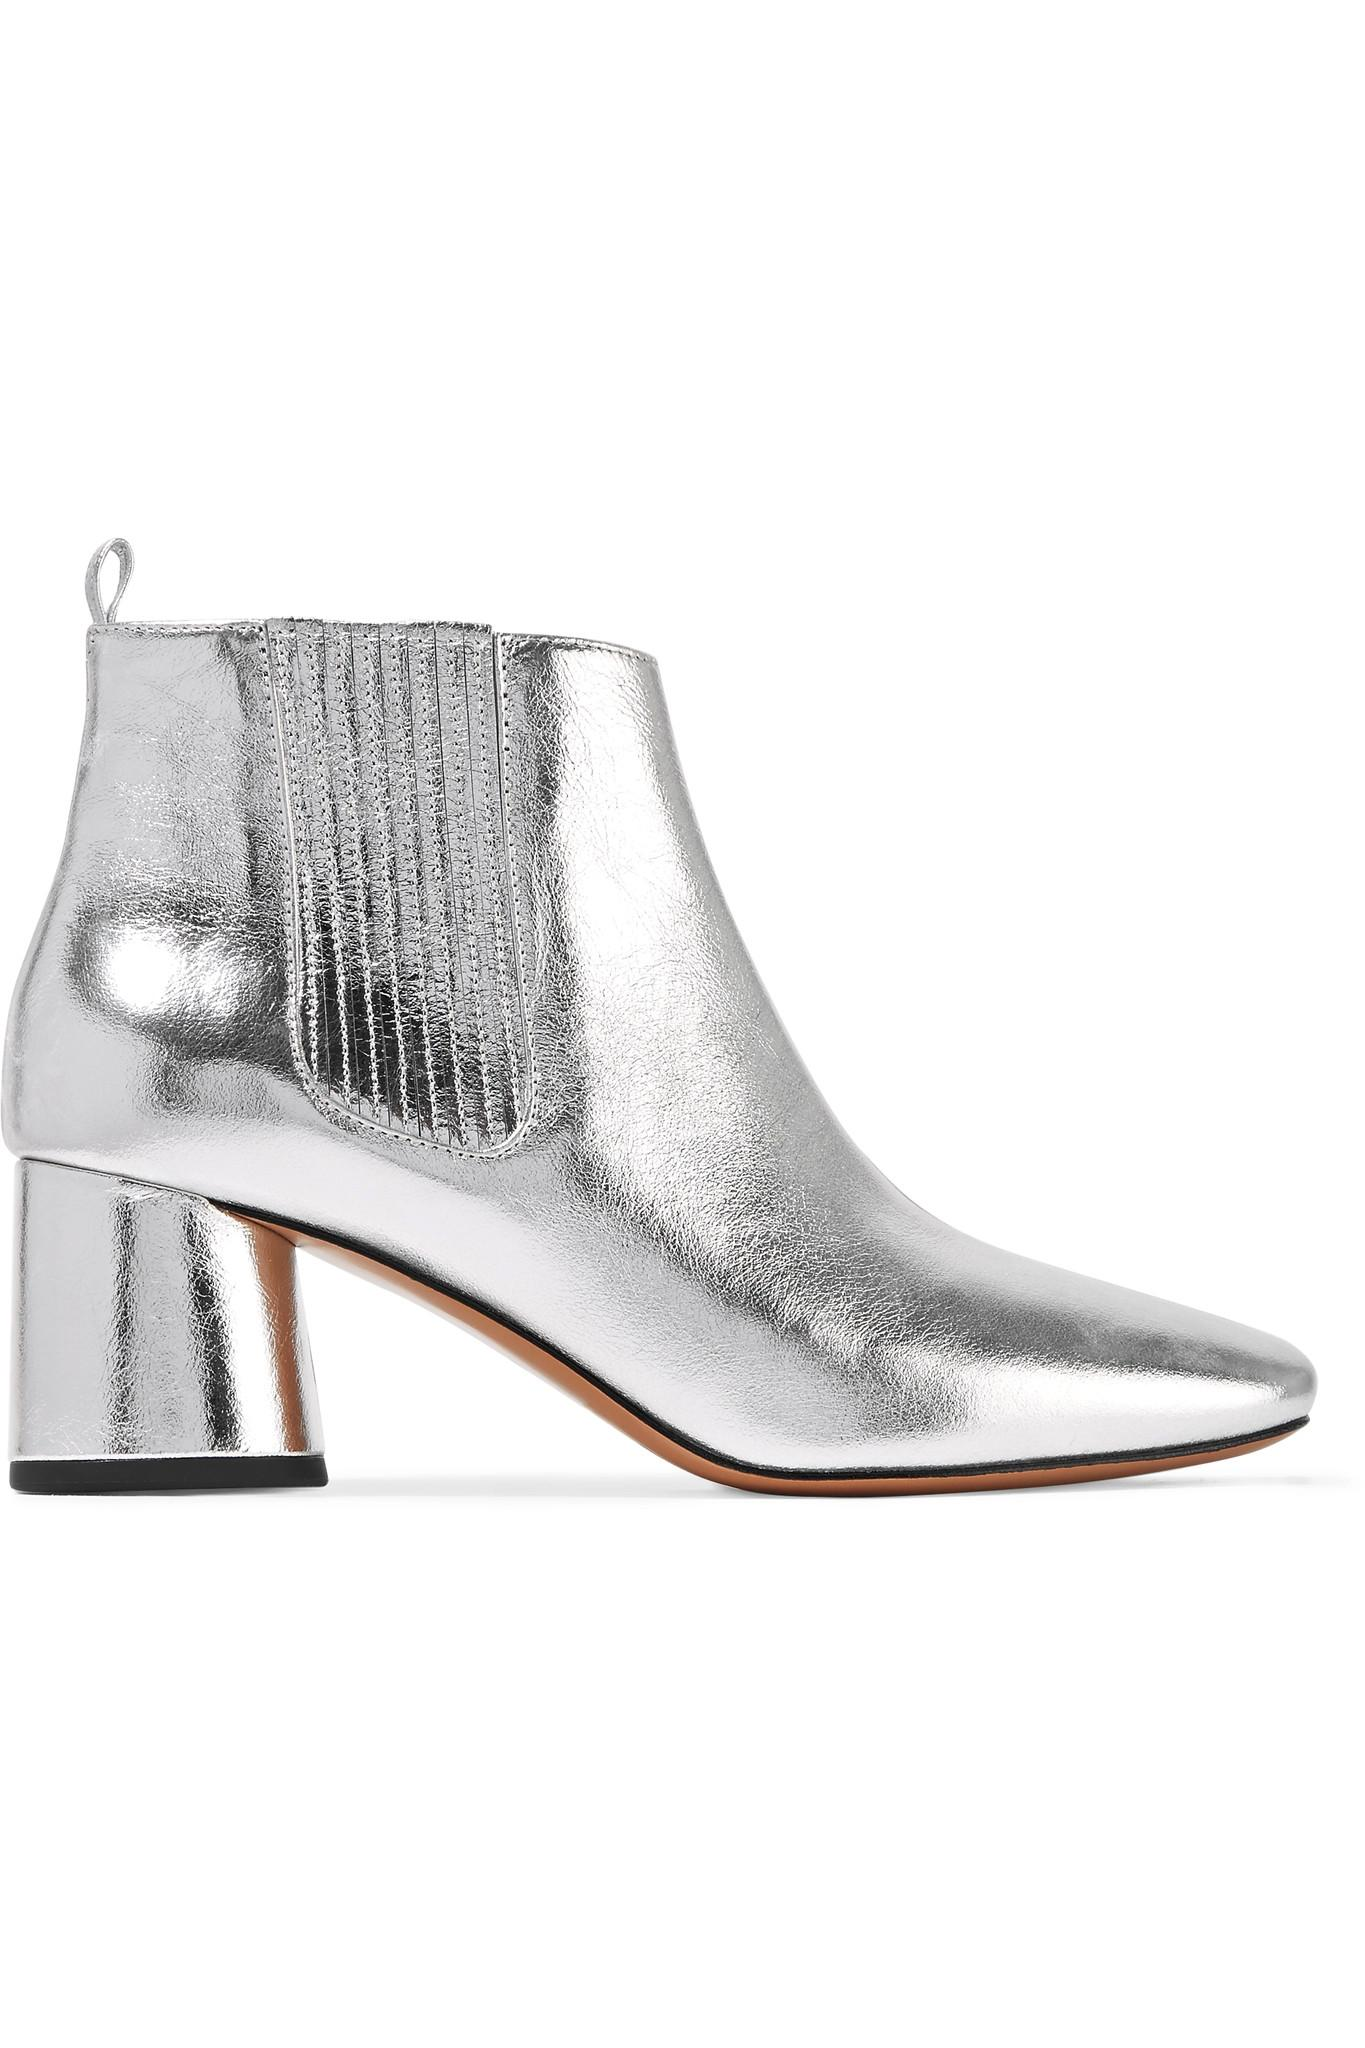 marc jacobs rocket metallic leather chelsea boots in metallic lyst. Black Bedroom Furniture Sets. Home Design Ideas